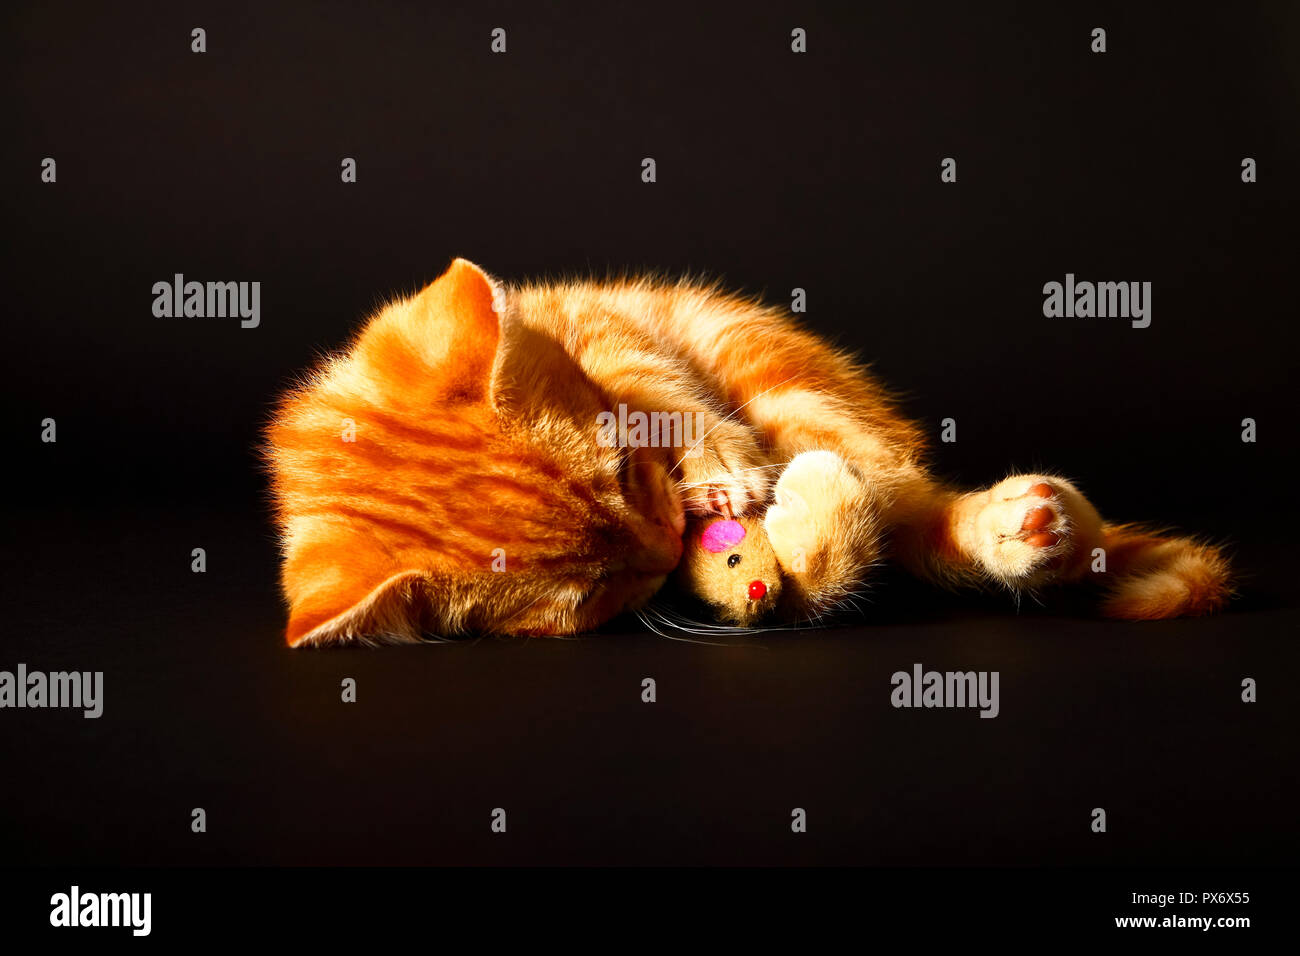 Ginger mackerel tabby12 week old kitten isolated on a black background playing with a toy mouse Stock Photo